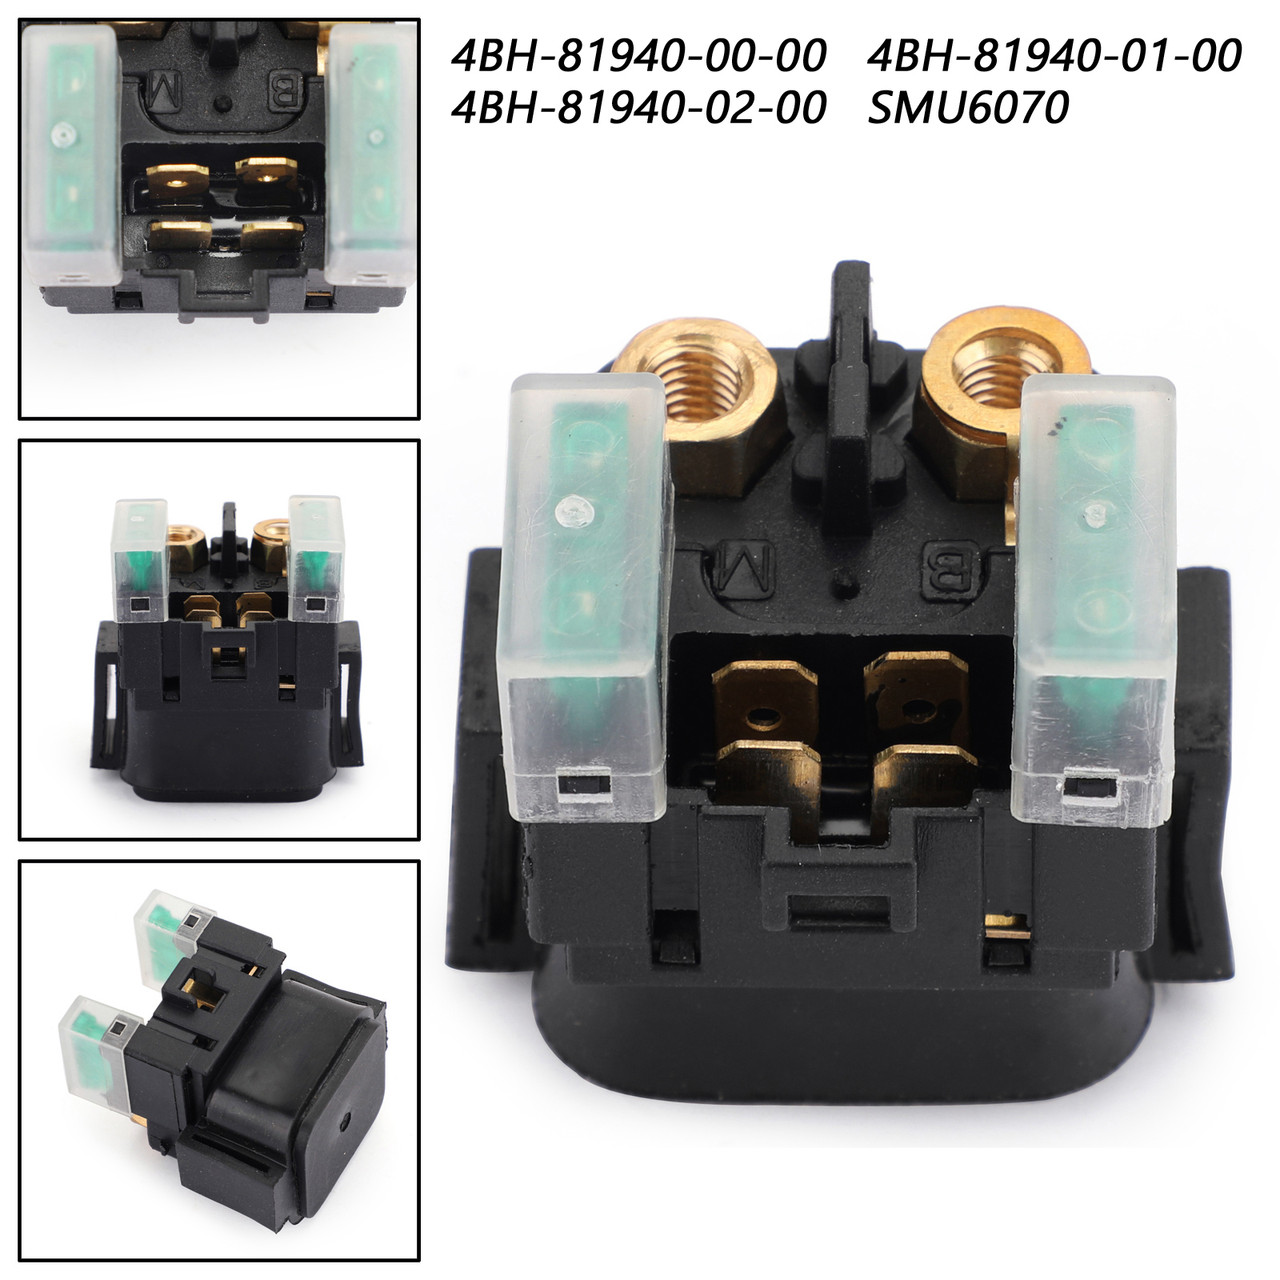 Starter Relay Solenoid For Yamaha 4BH-81940-00-00 1D0-81940-02-00 ATV Part